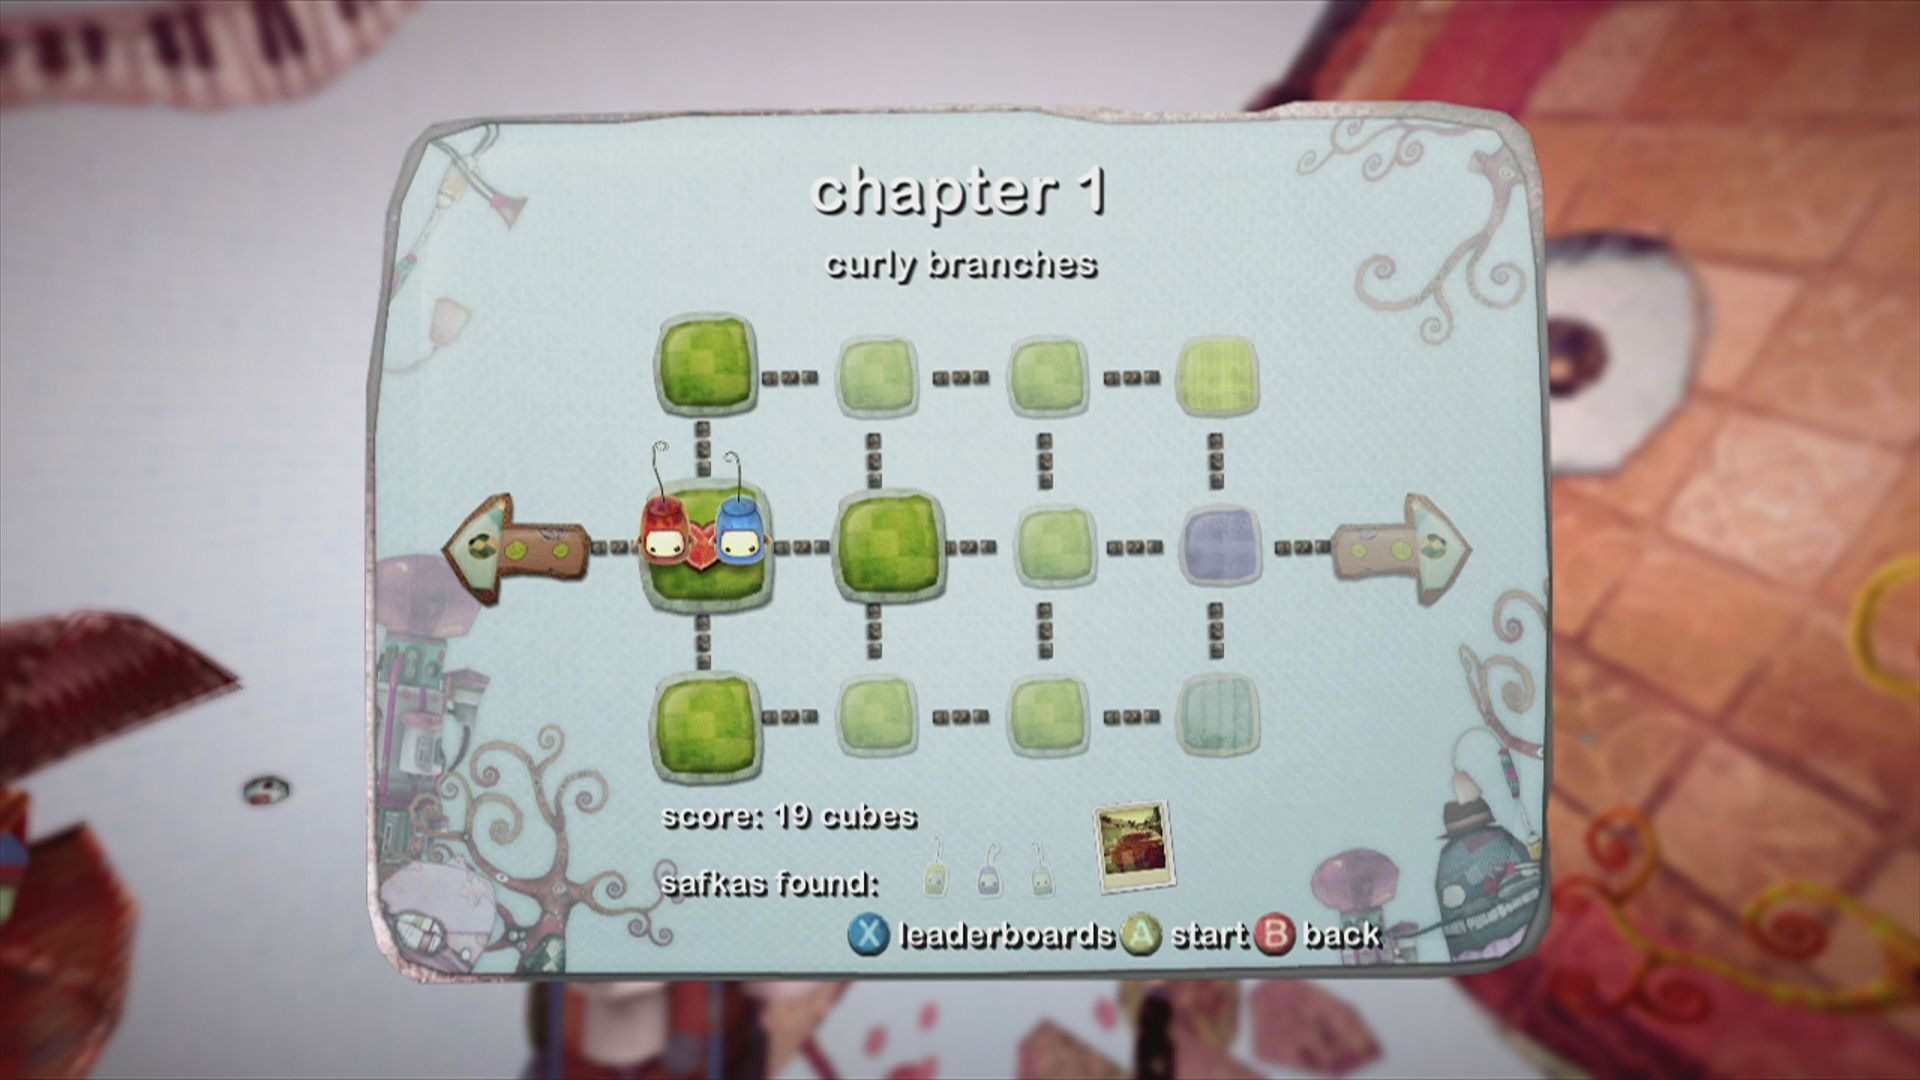 ilomilo Xbox 360 Level select in chapter one. You need to solve adjacent puzzles in order to proceed